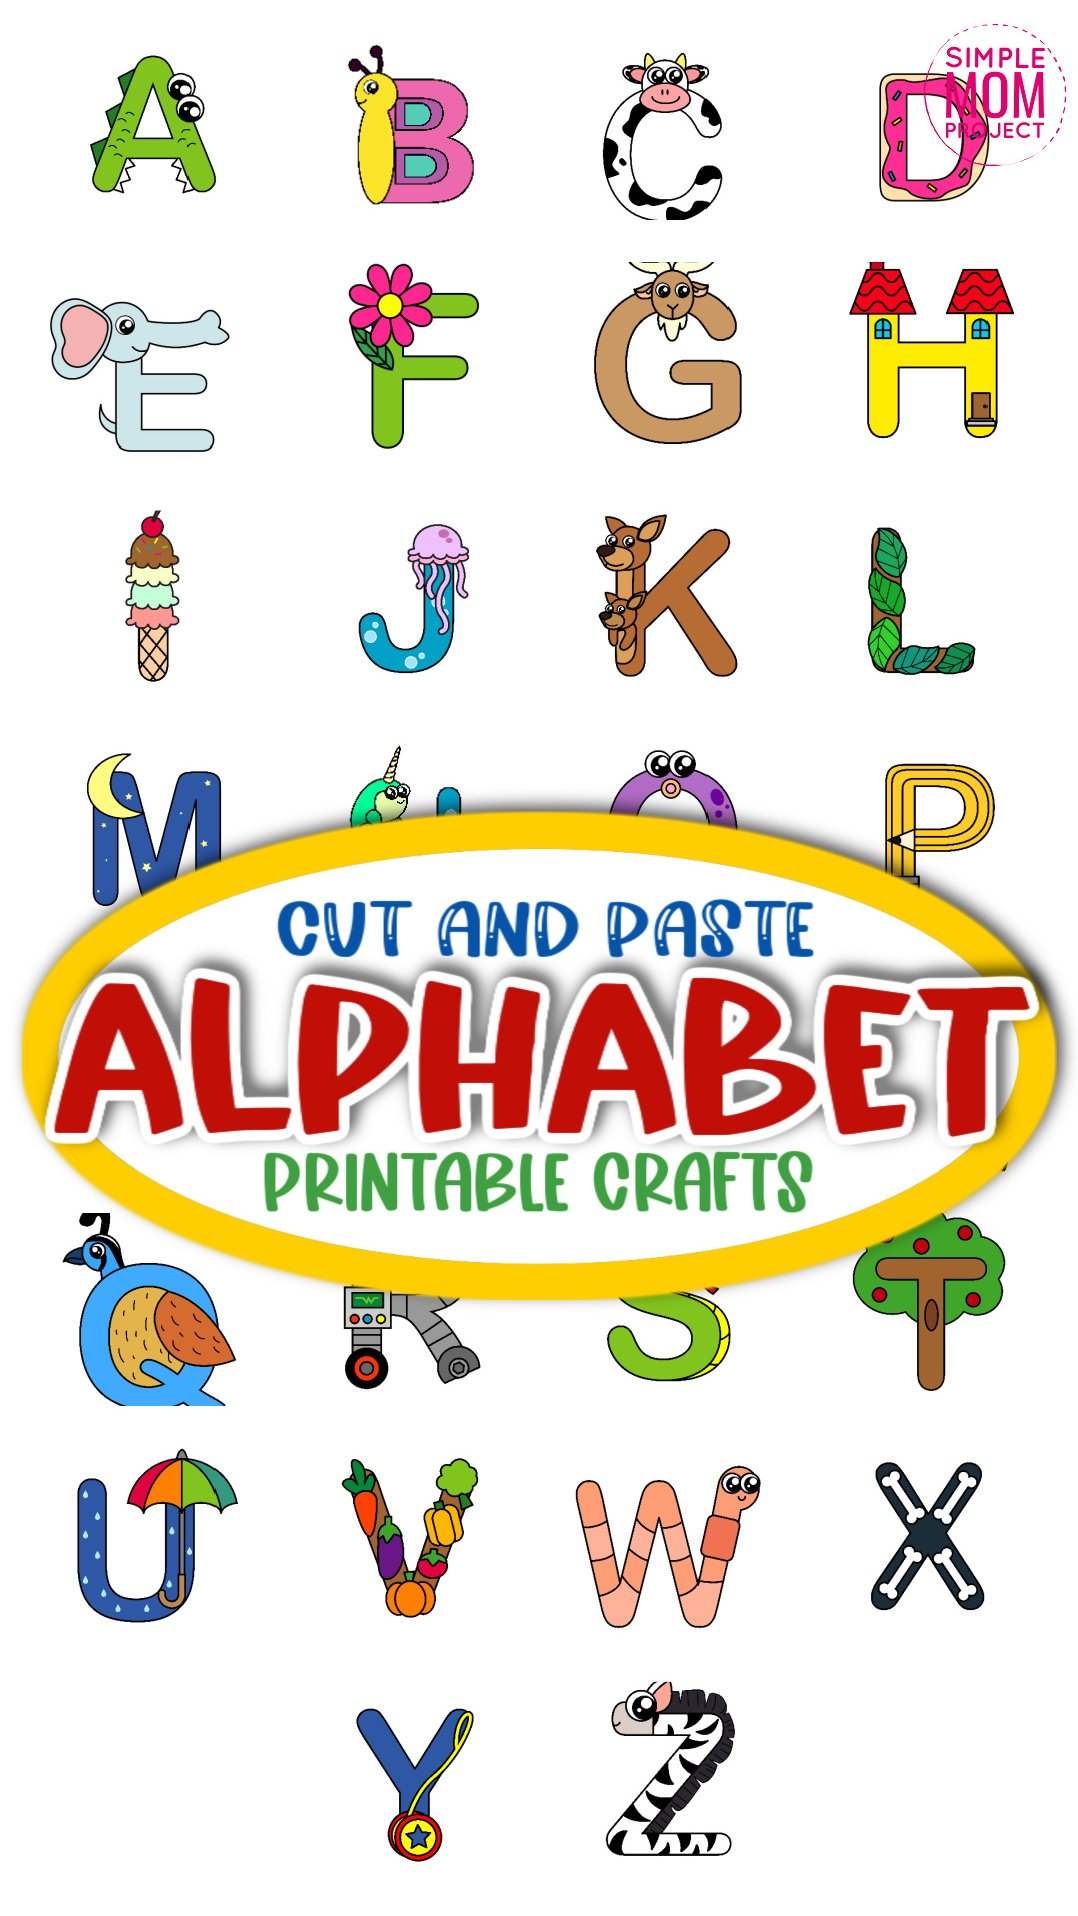 Printable Alphabet Crafts for Kids, preschoolers and toddlers